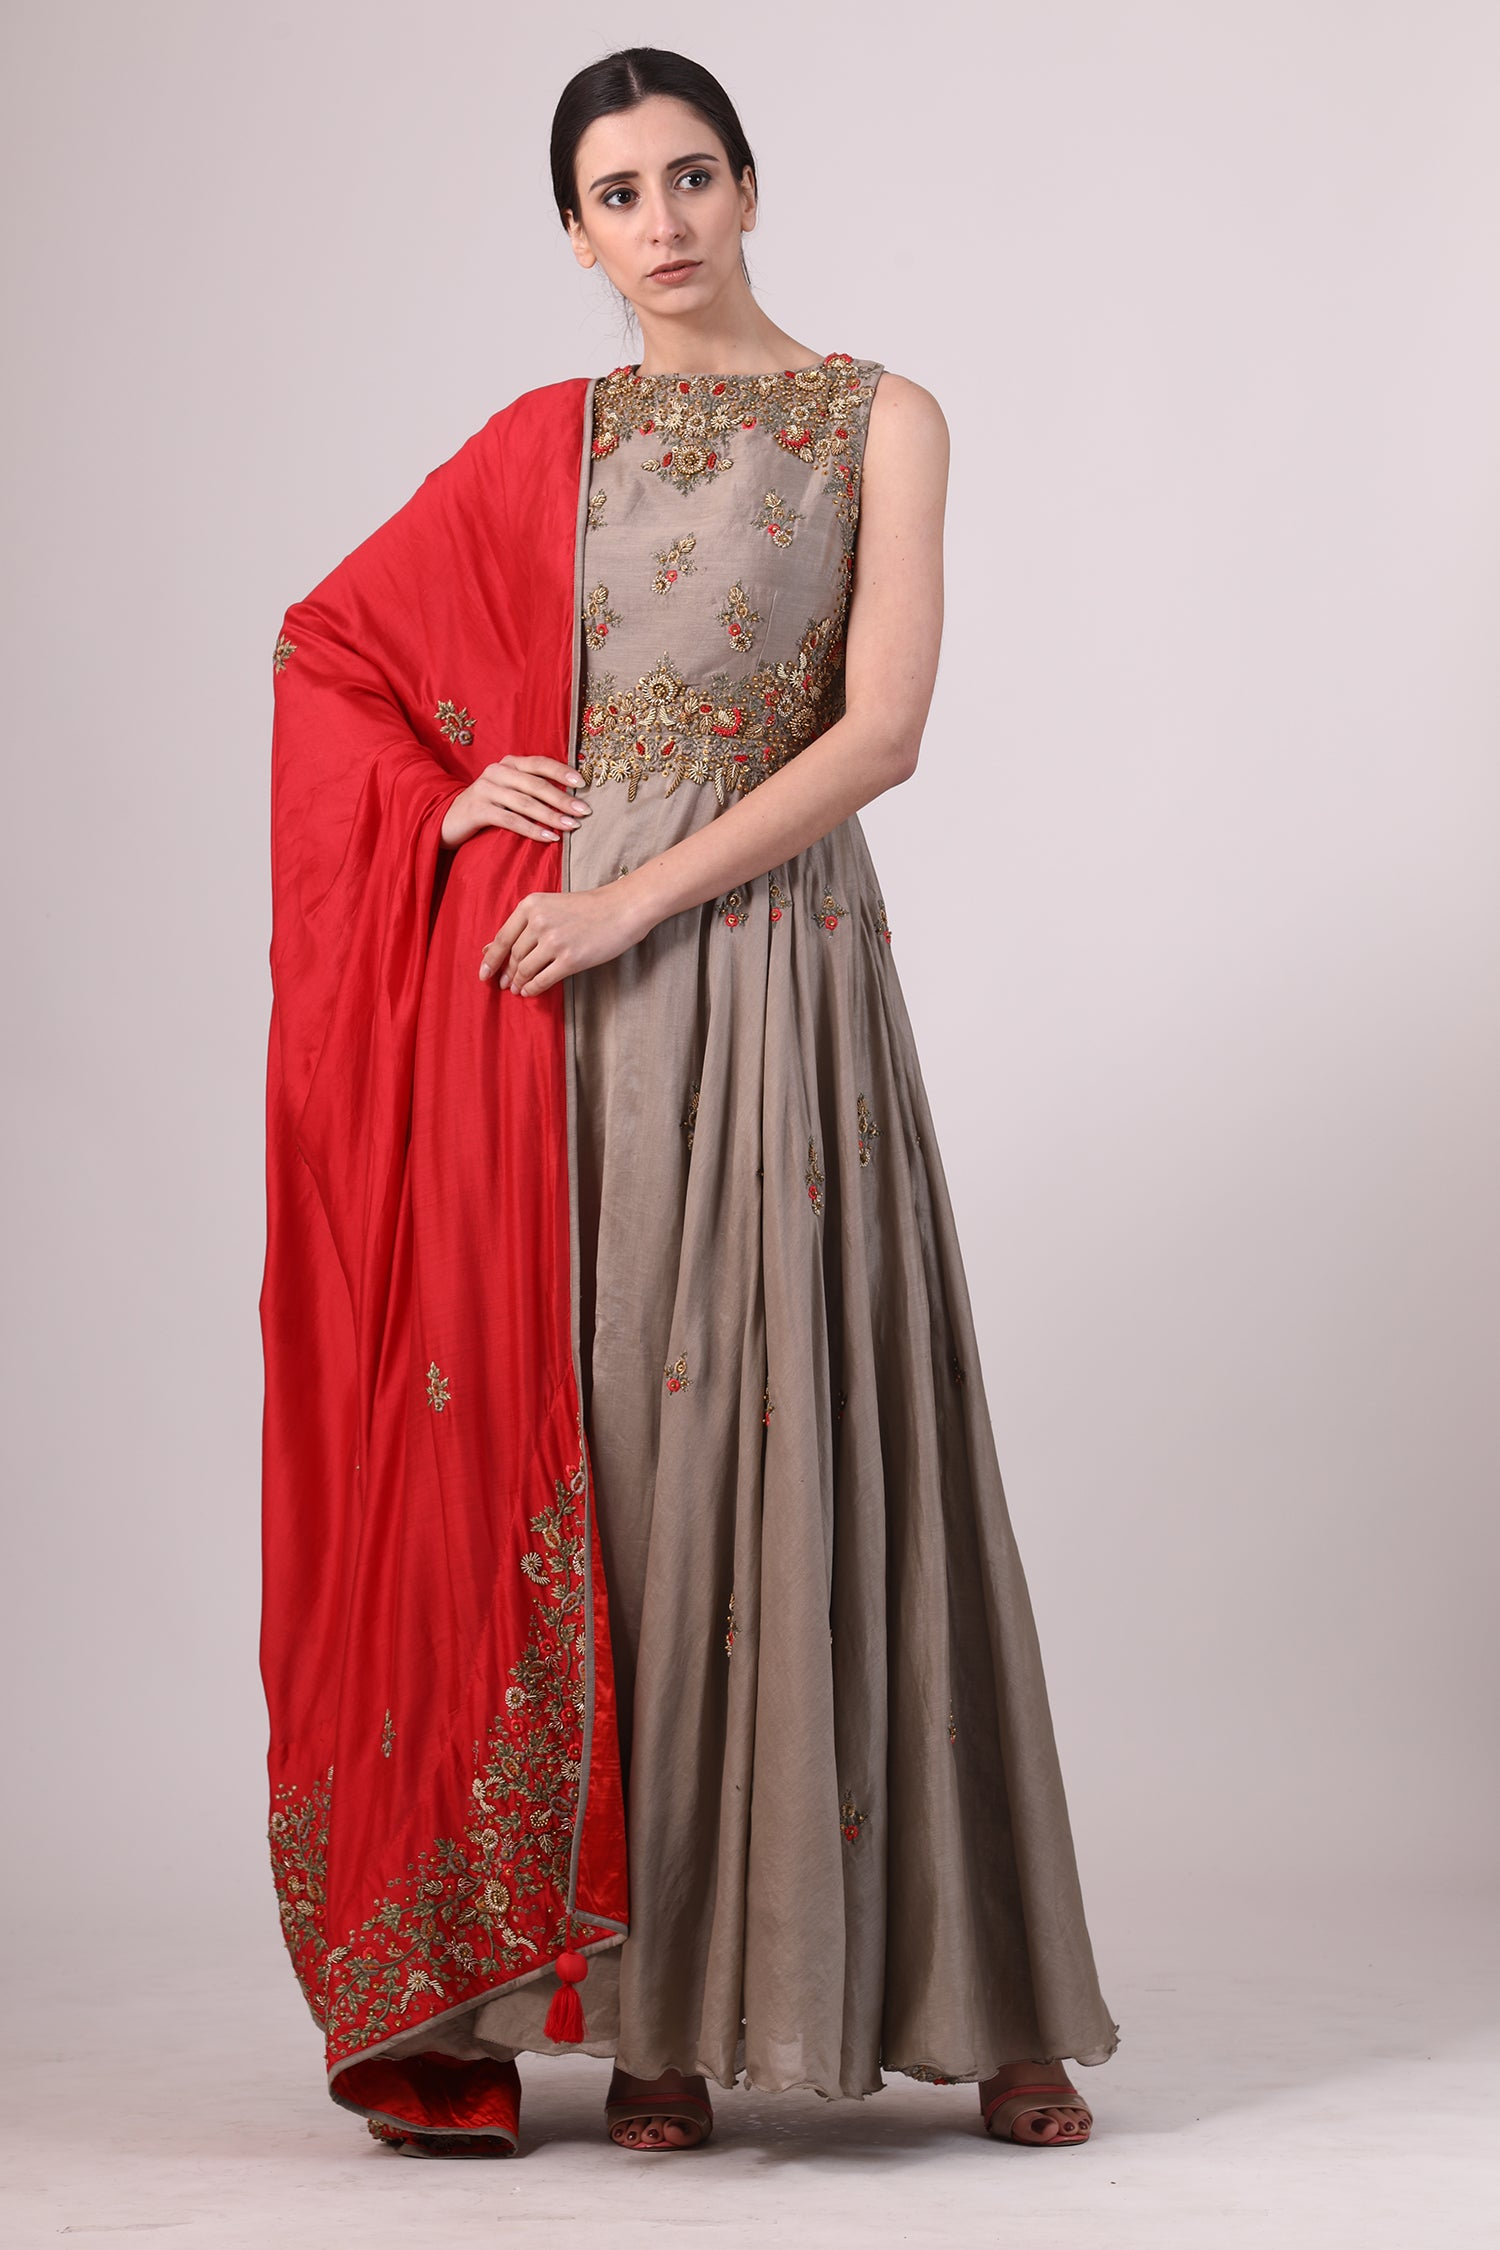 Embriodered Floor-Length Kurta & Dupatta. - The Grand Trunk